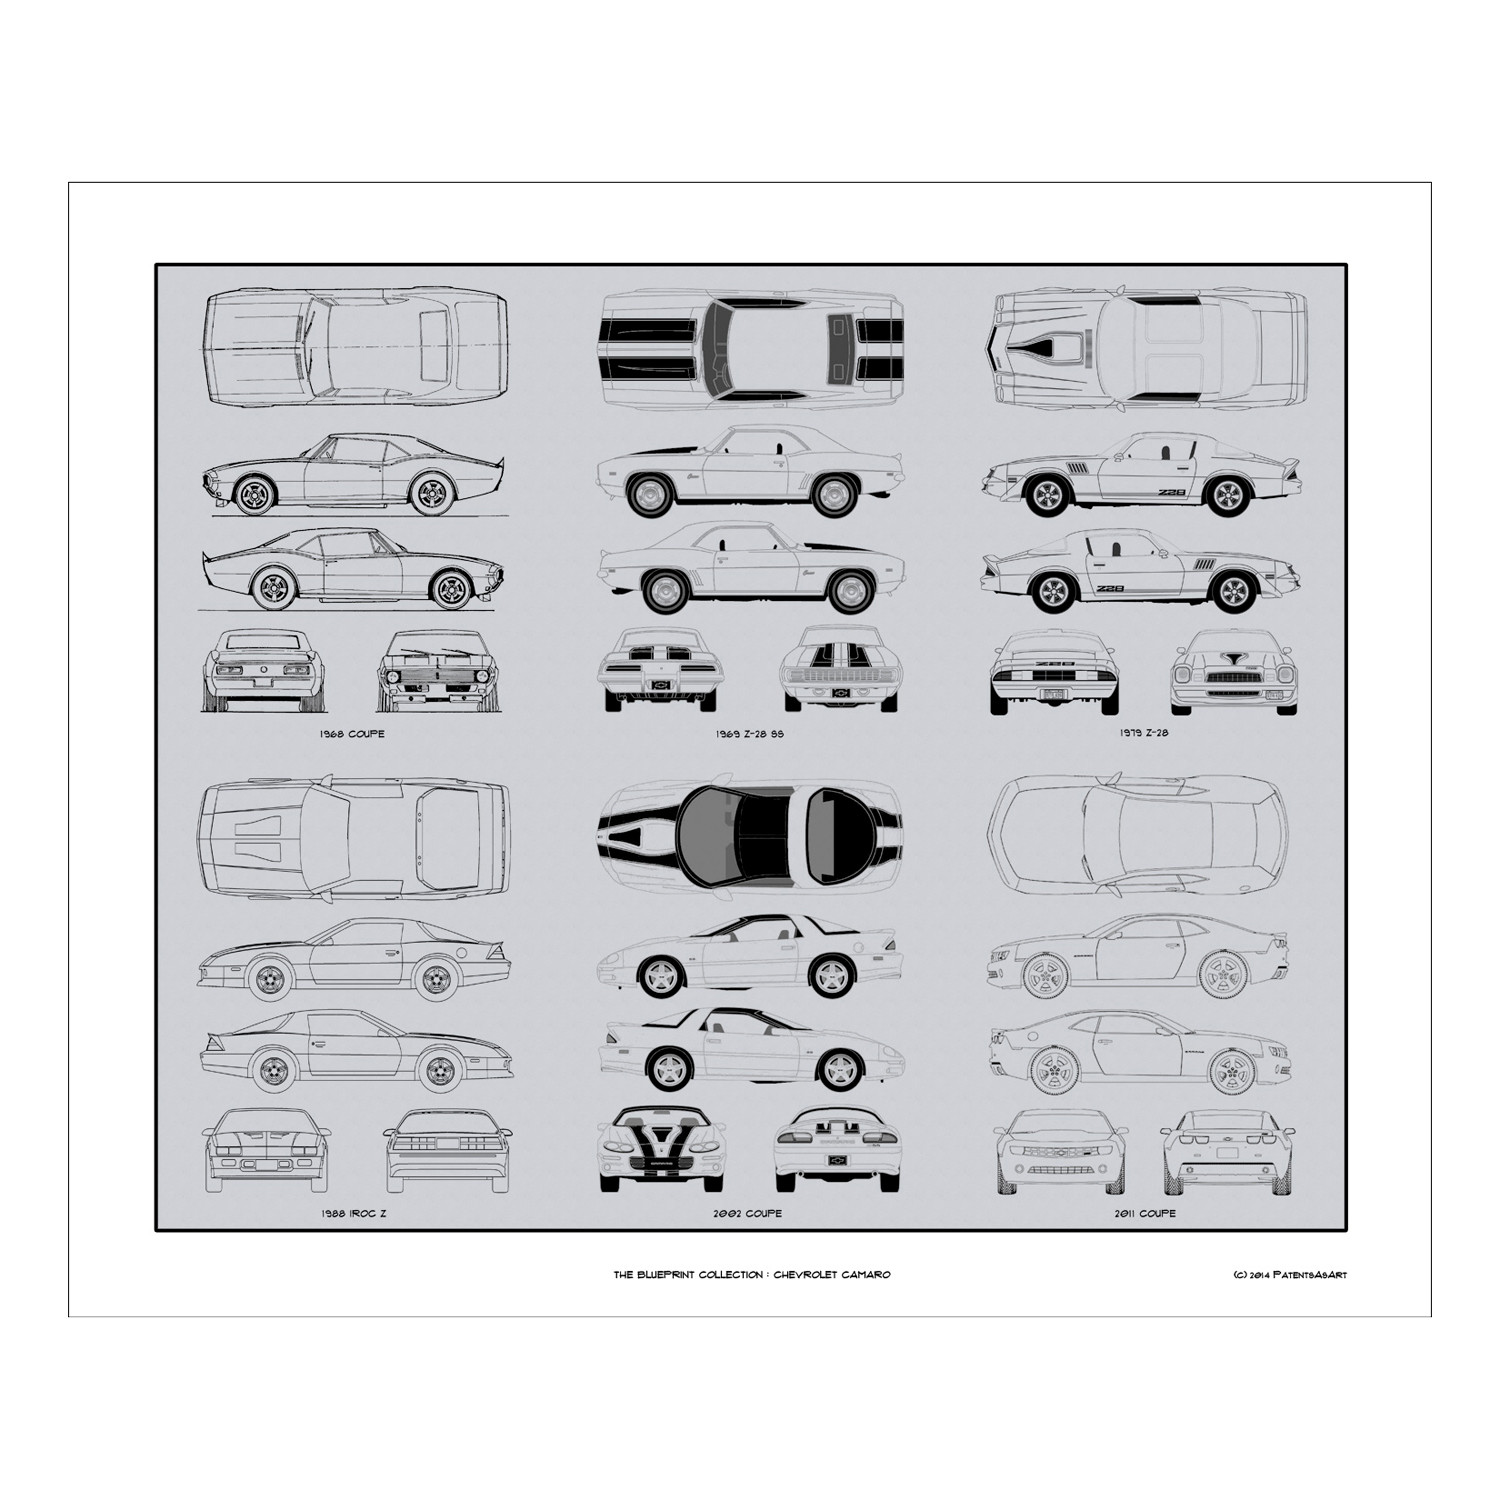 Chevrolet Camaro Blueprint Collection - Concept Products - Touch of ...